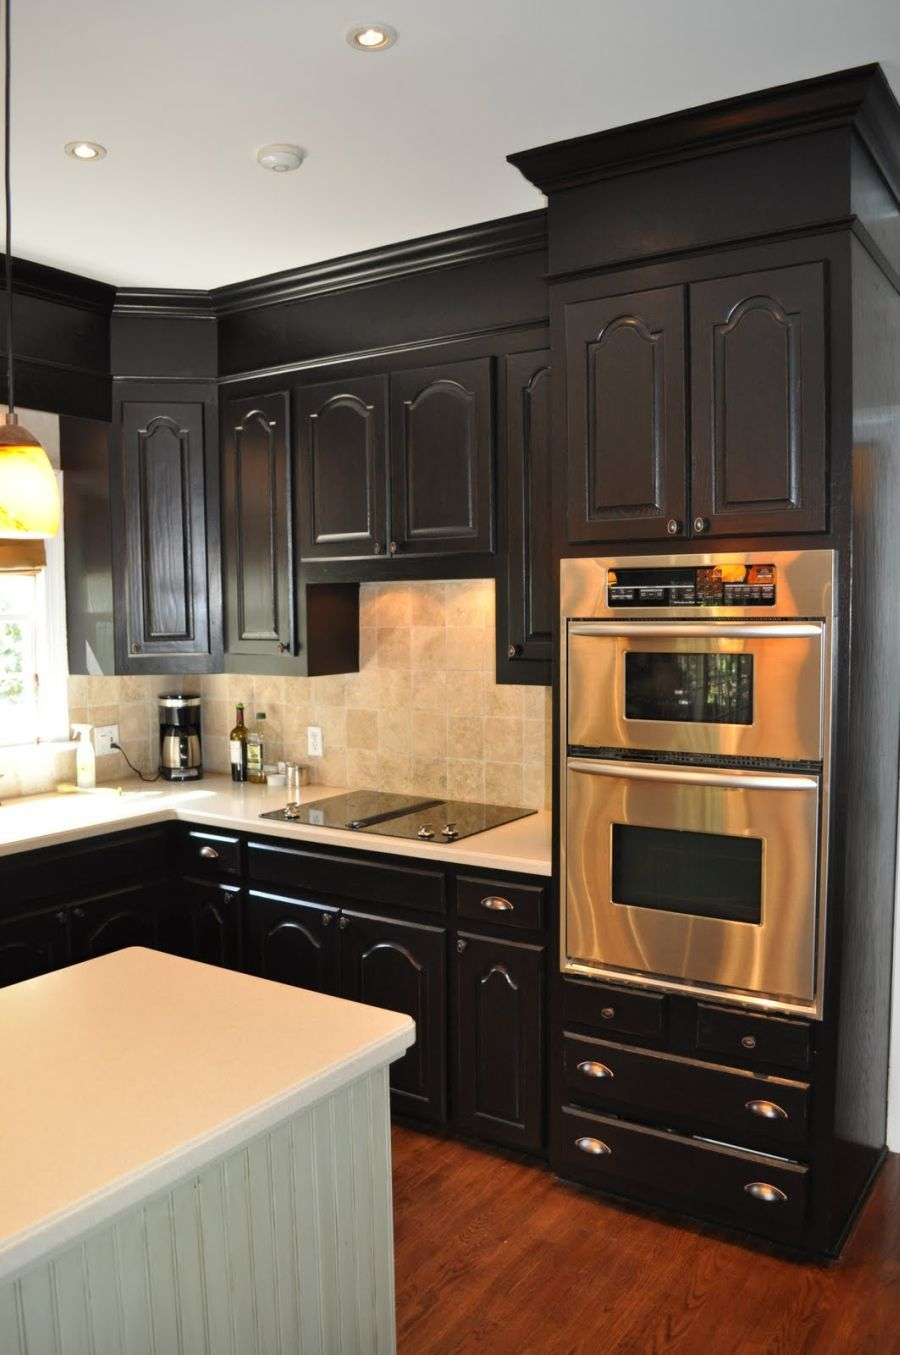 10 Unique Crown Molding Ideas For Kitchen one color fits most black kitchen cabinets dod1955msn 2020